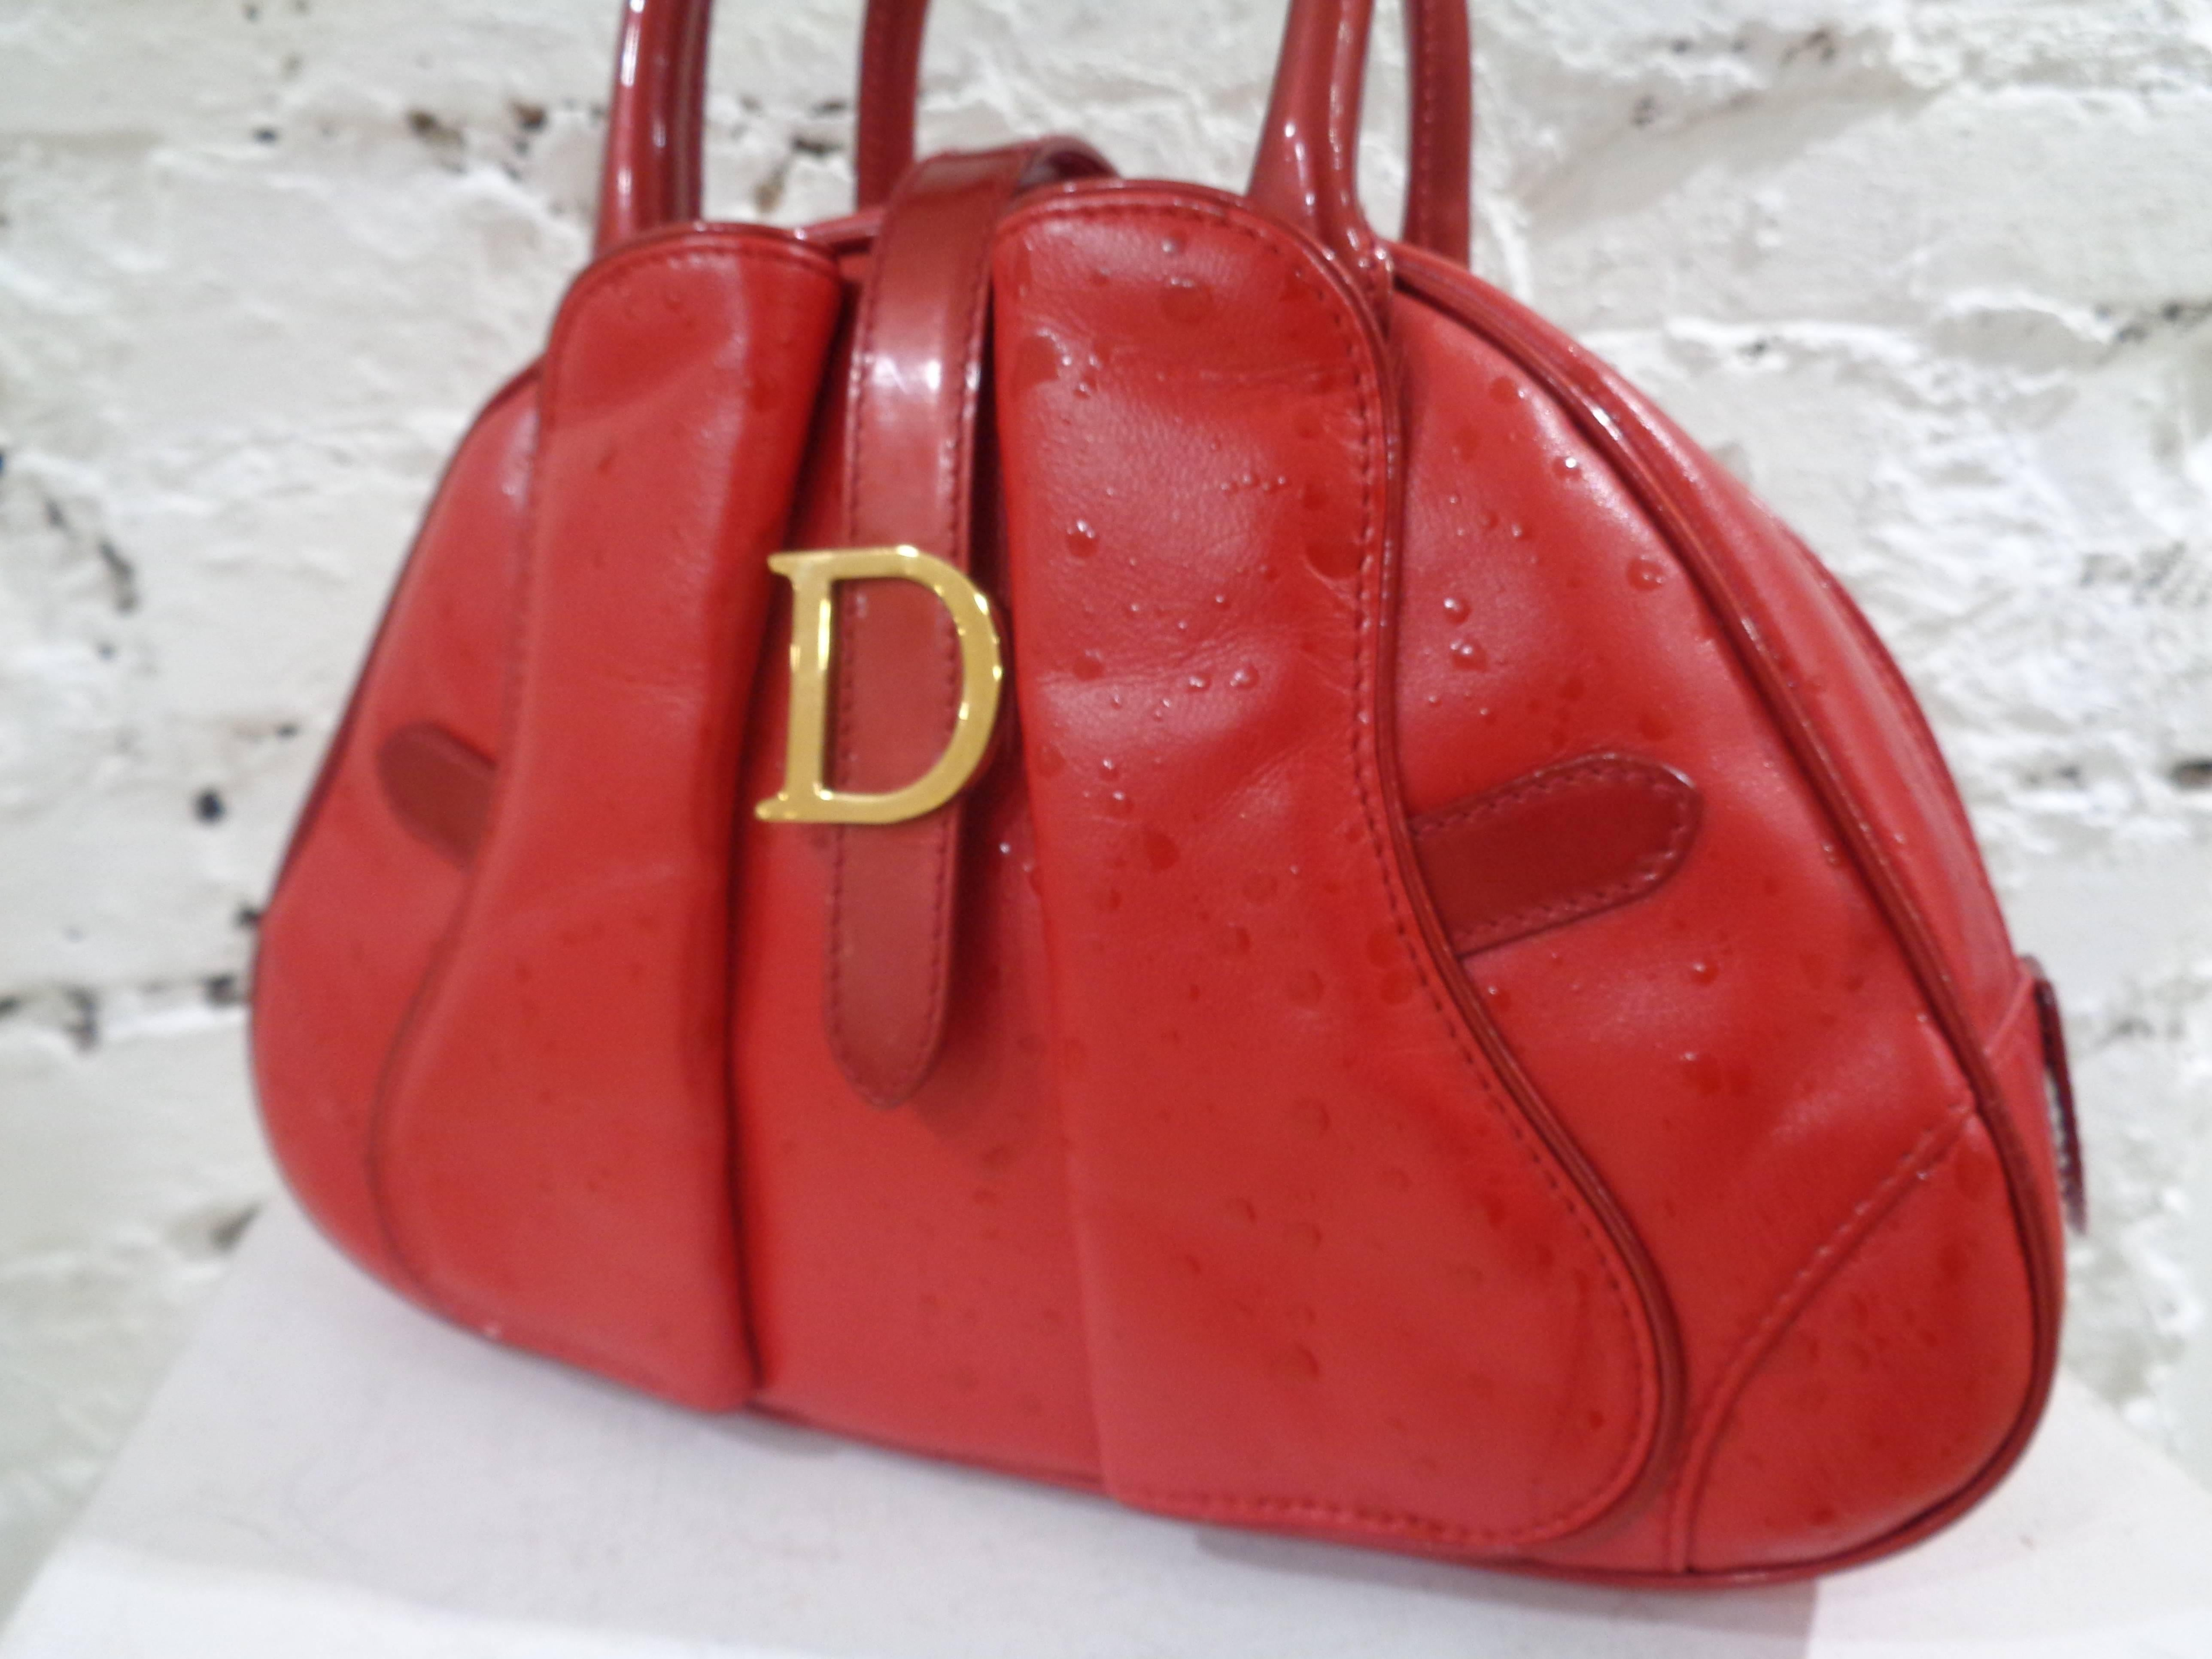 3ae49f94fca4 Christian Dior red leather ostrich stamp handbag For Sale at 1stdibs